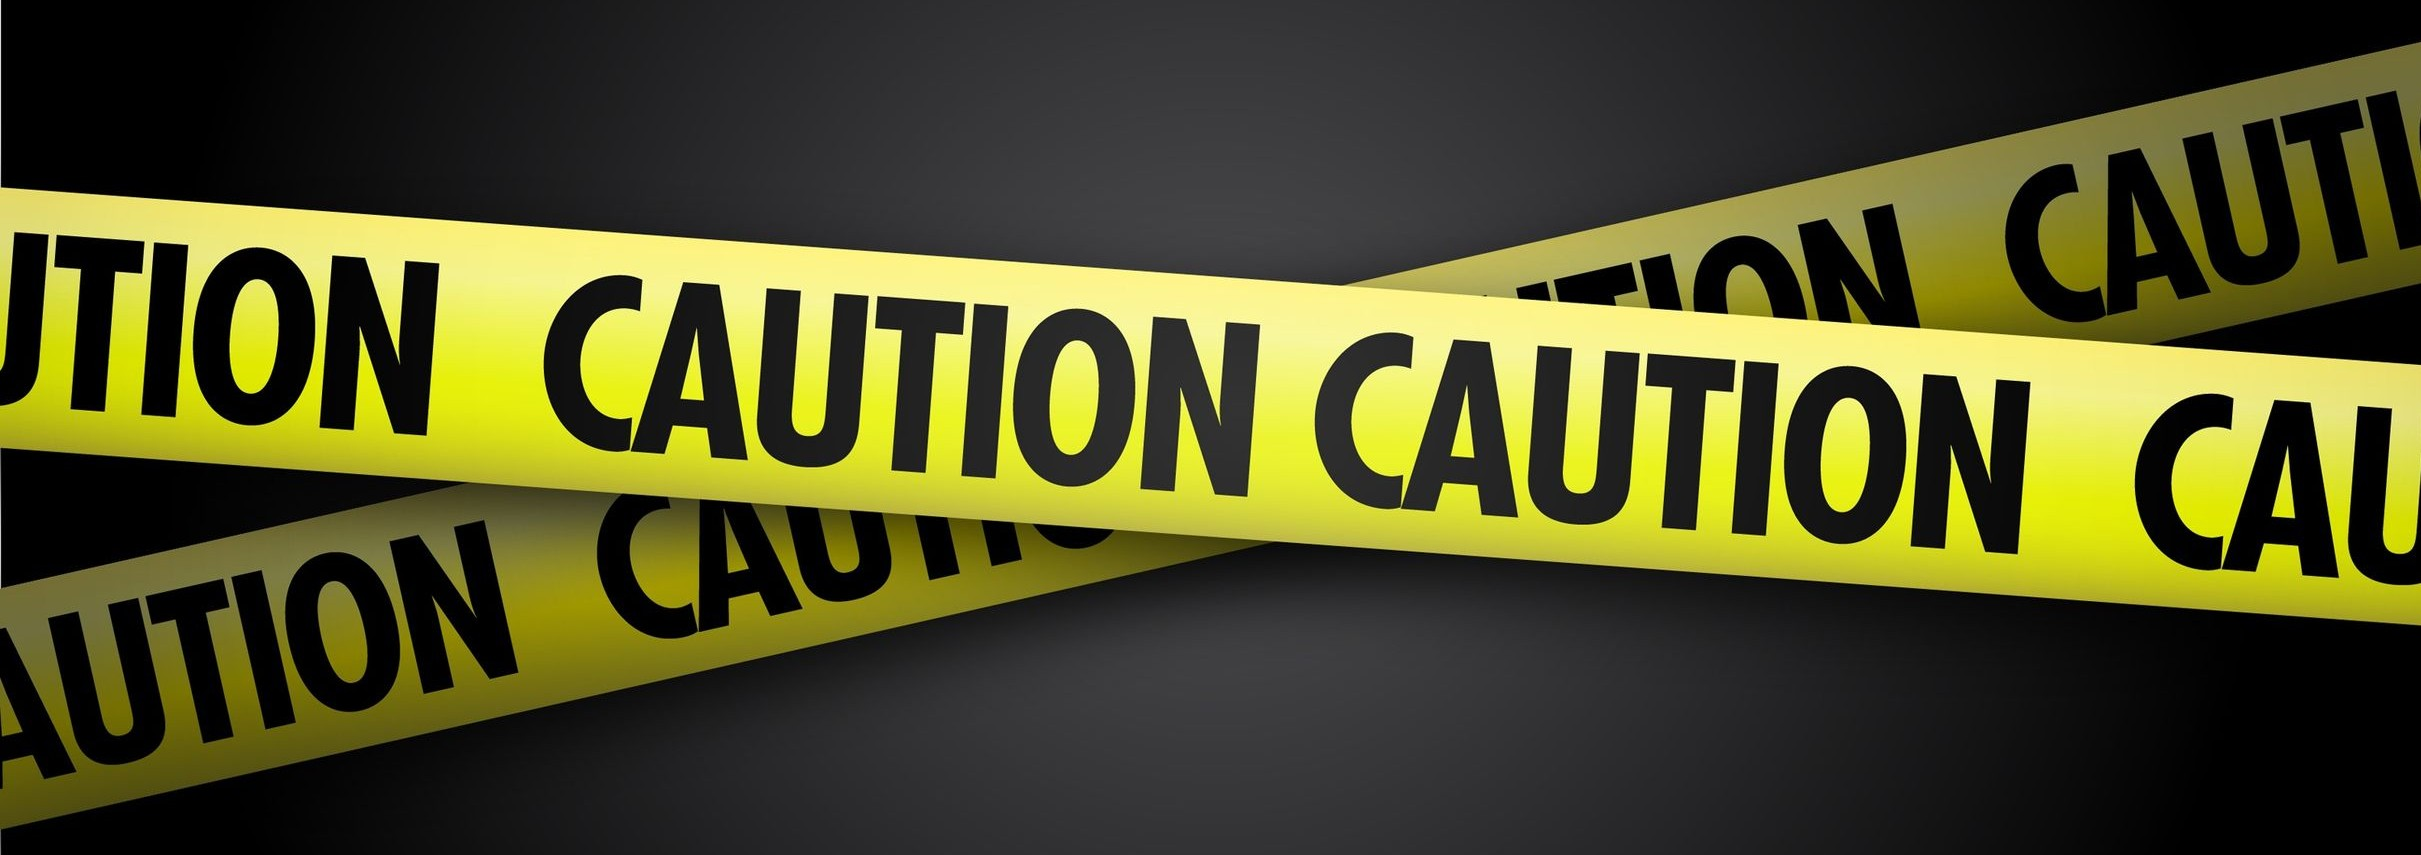 caution-tape-background-caution-tape-clip-art-crime-scene-tape-yiiyff-clipart